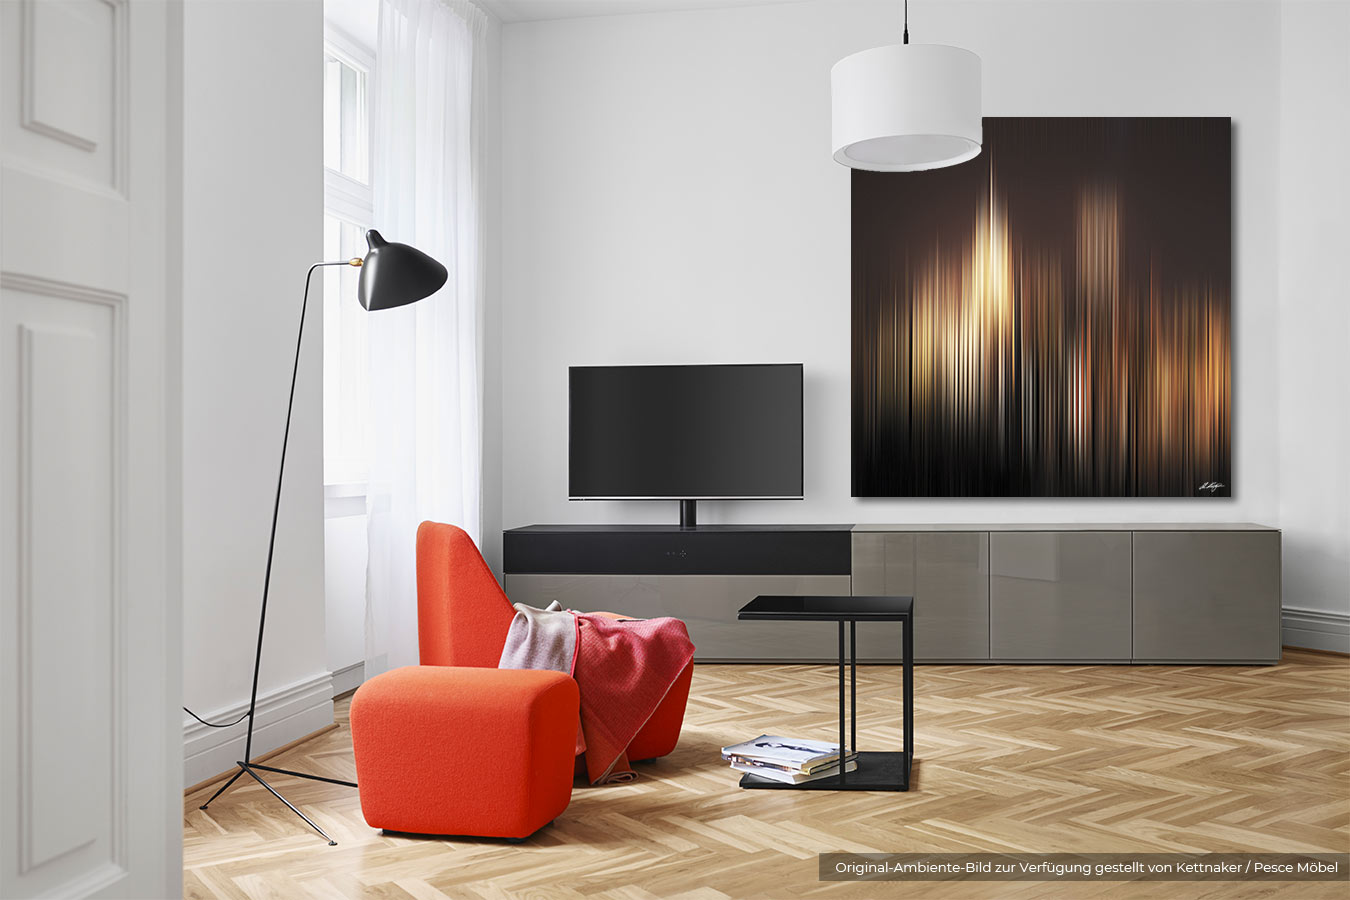 Fotografie trifft Design - Artwork